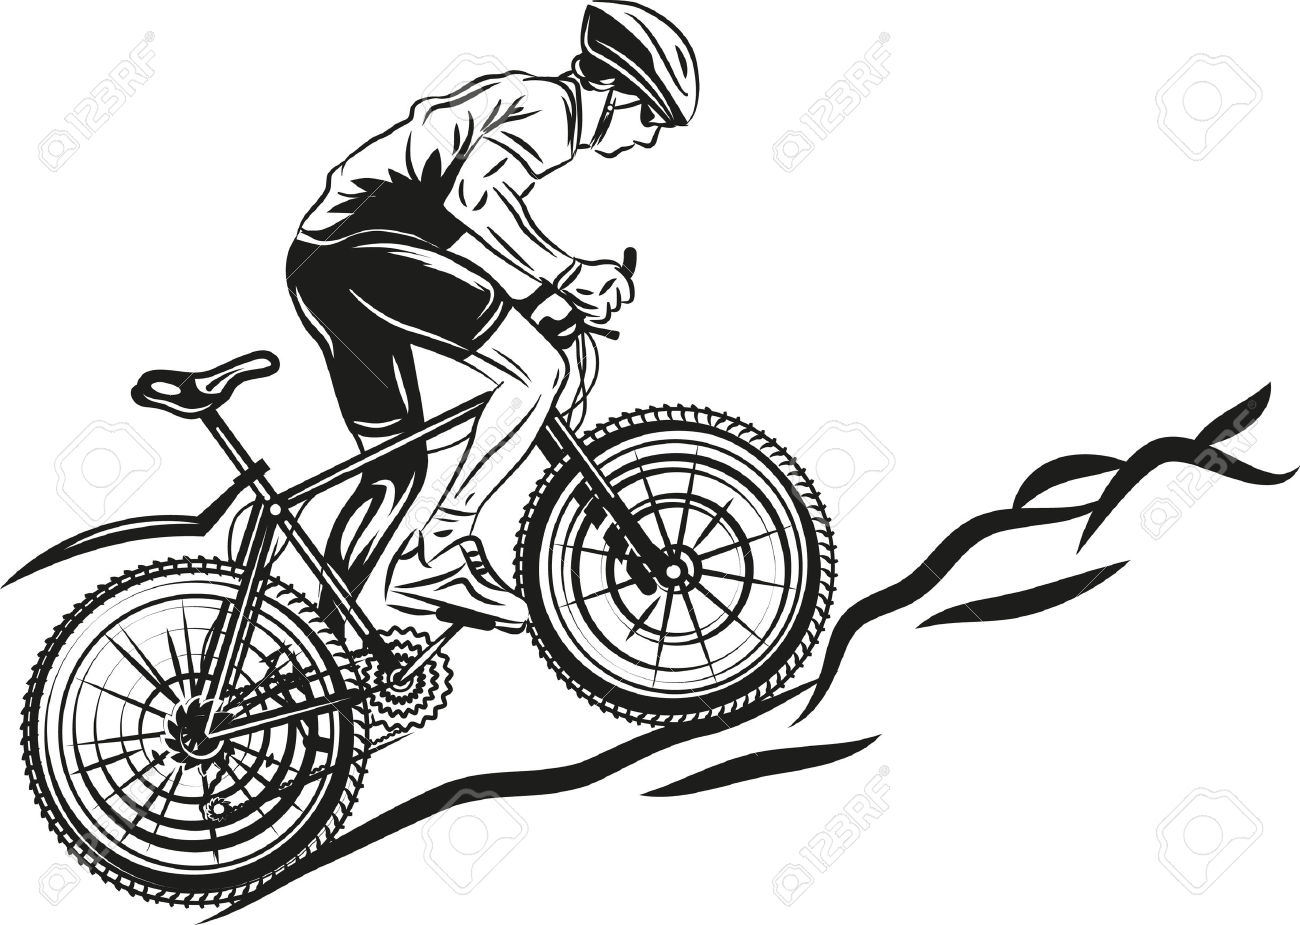 34910536 MTB biker Stock Vector mountain biking bike